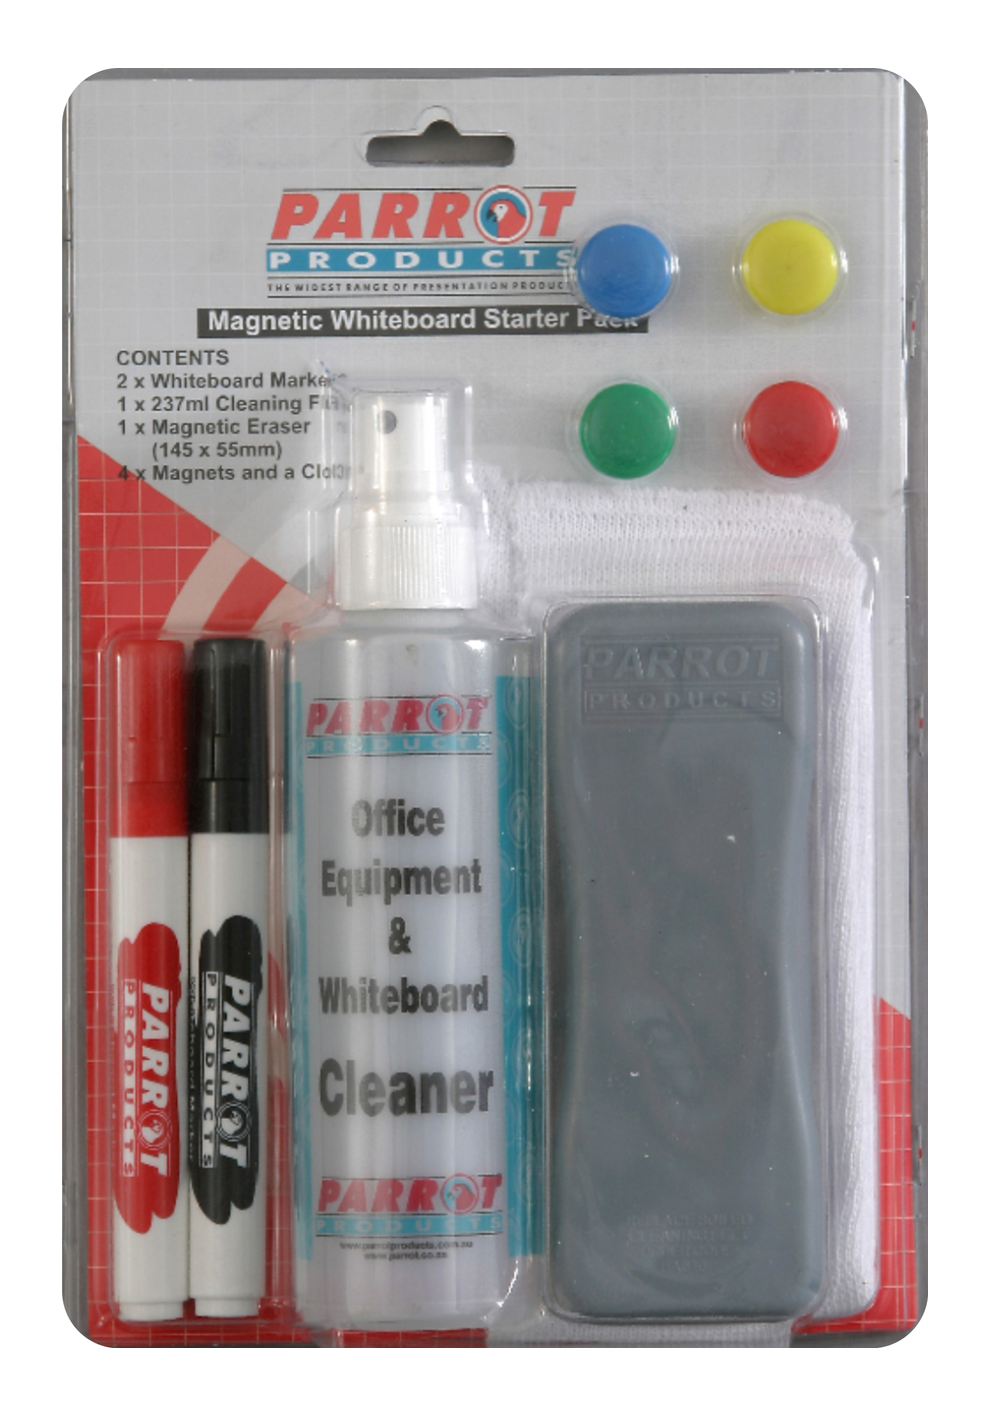 Parrot Starter Pack Whiteboard Magnetic